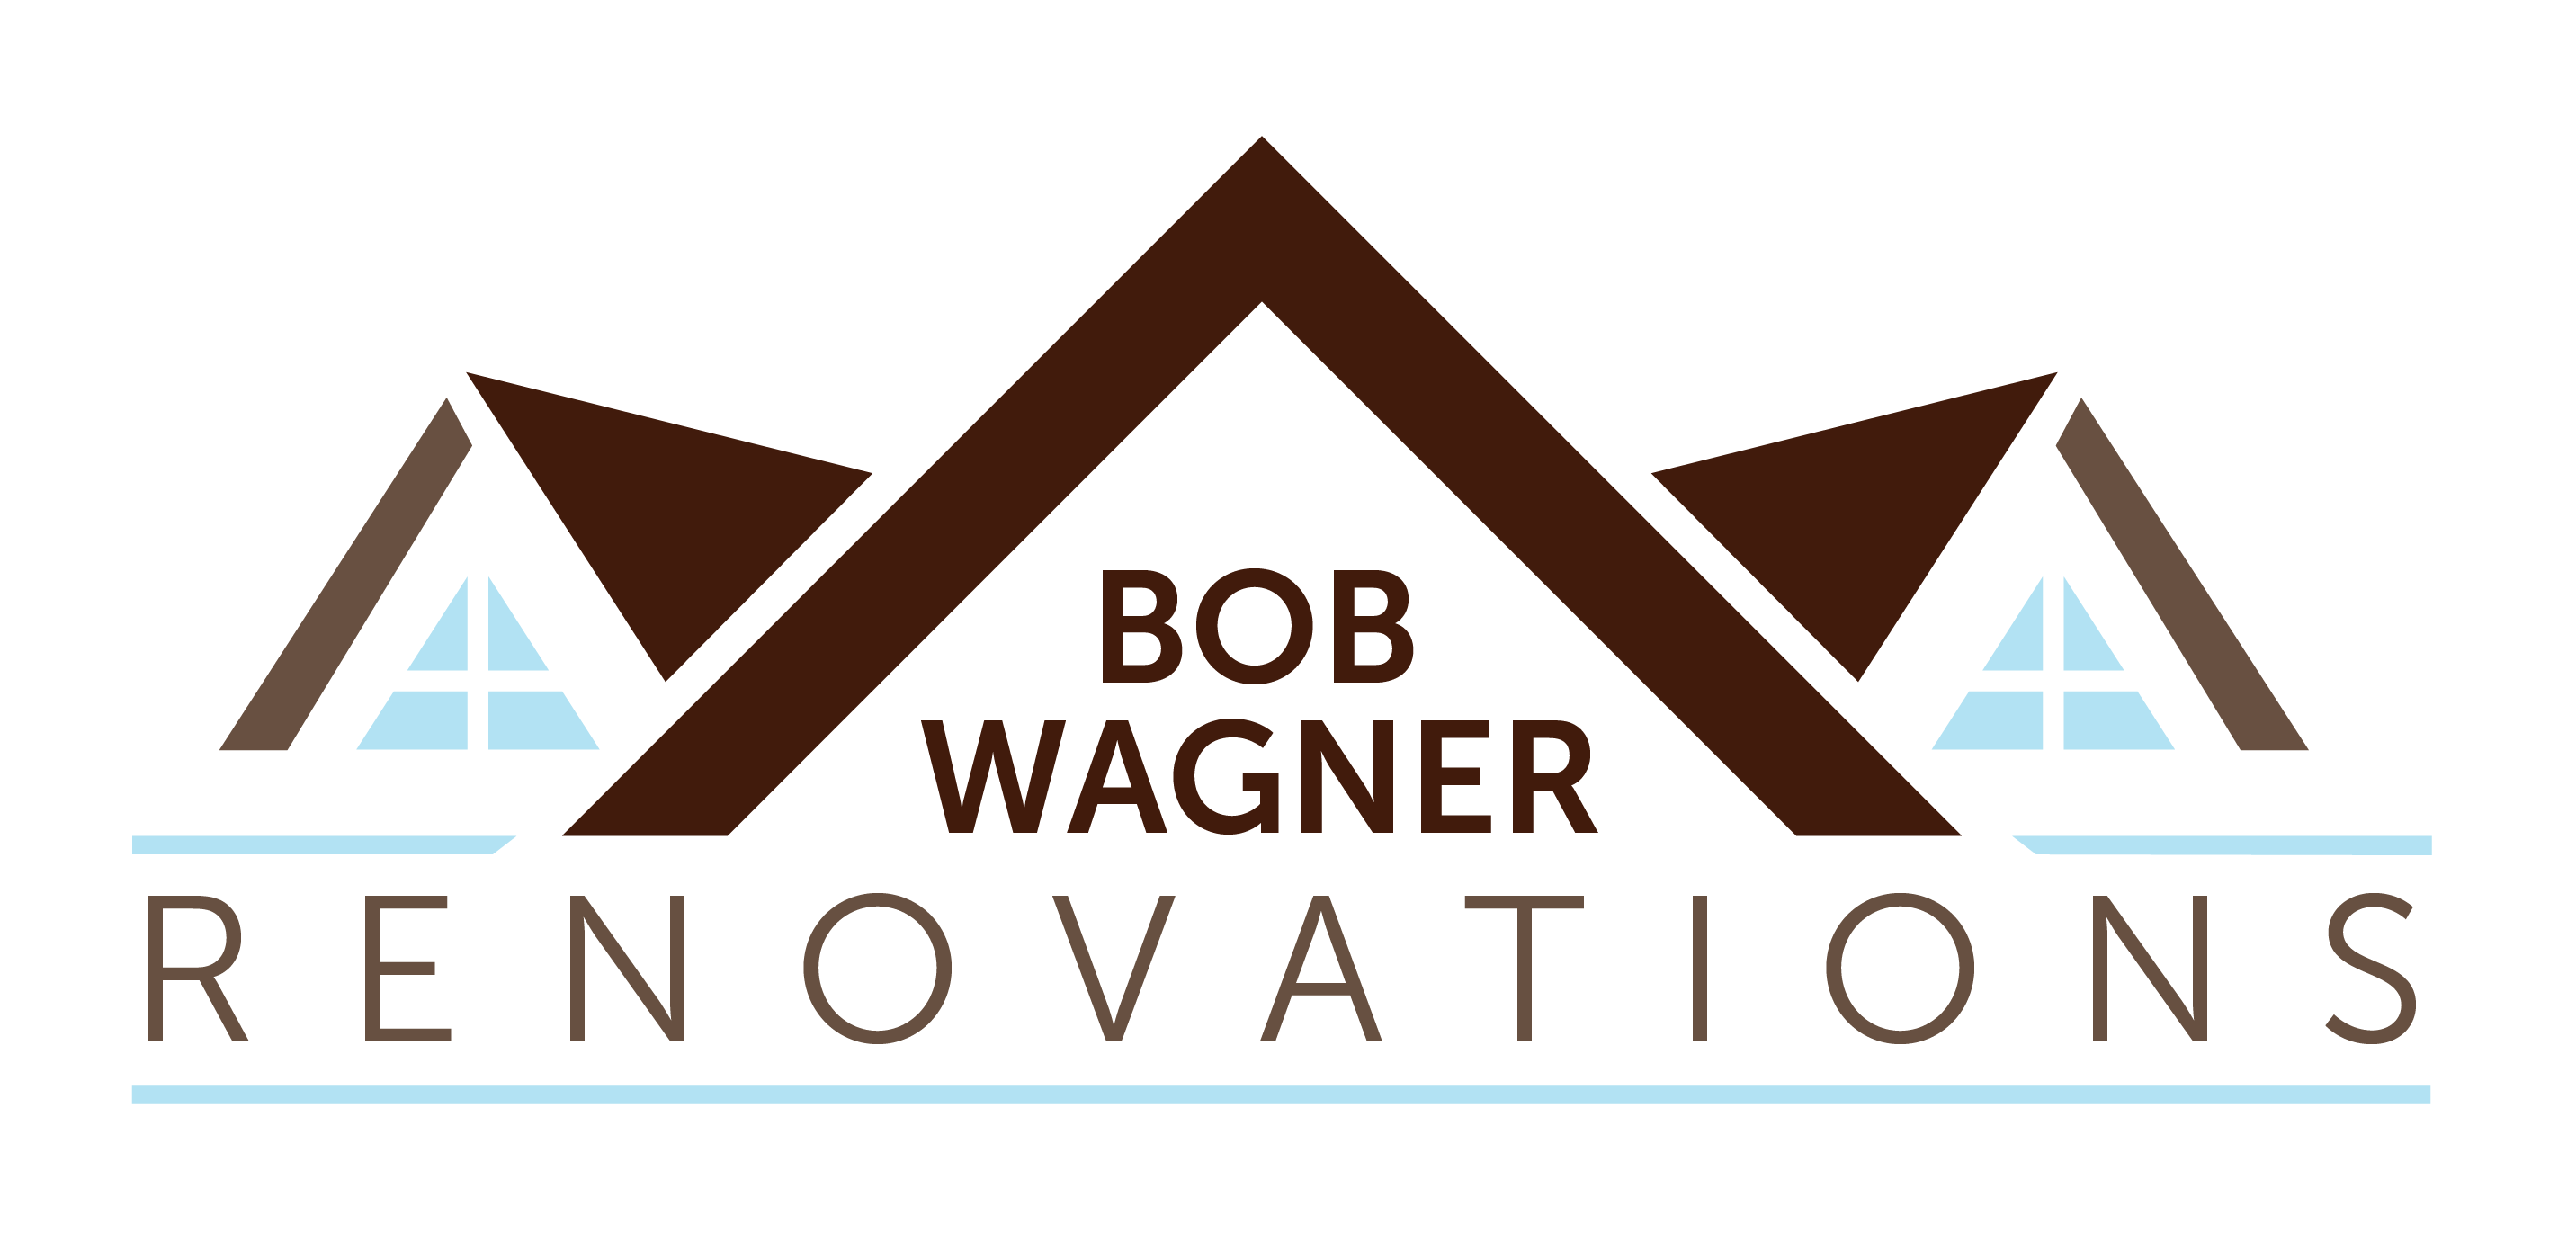 Bob Wagner Renovations